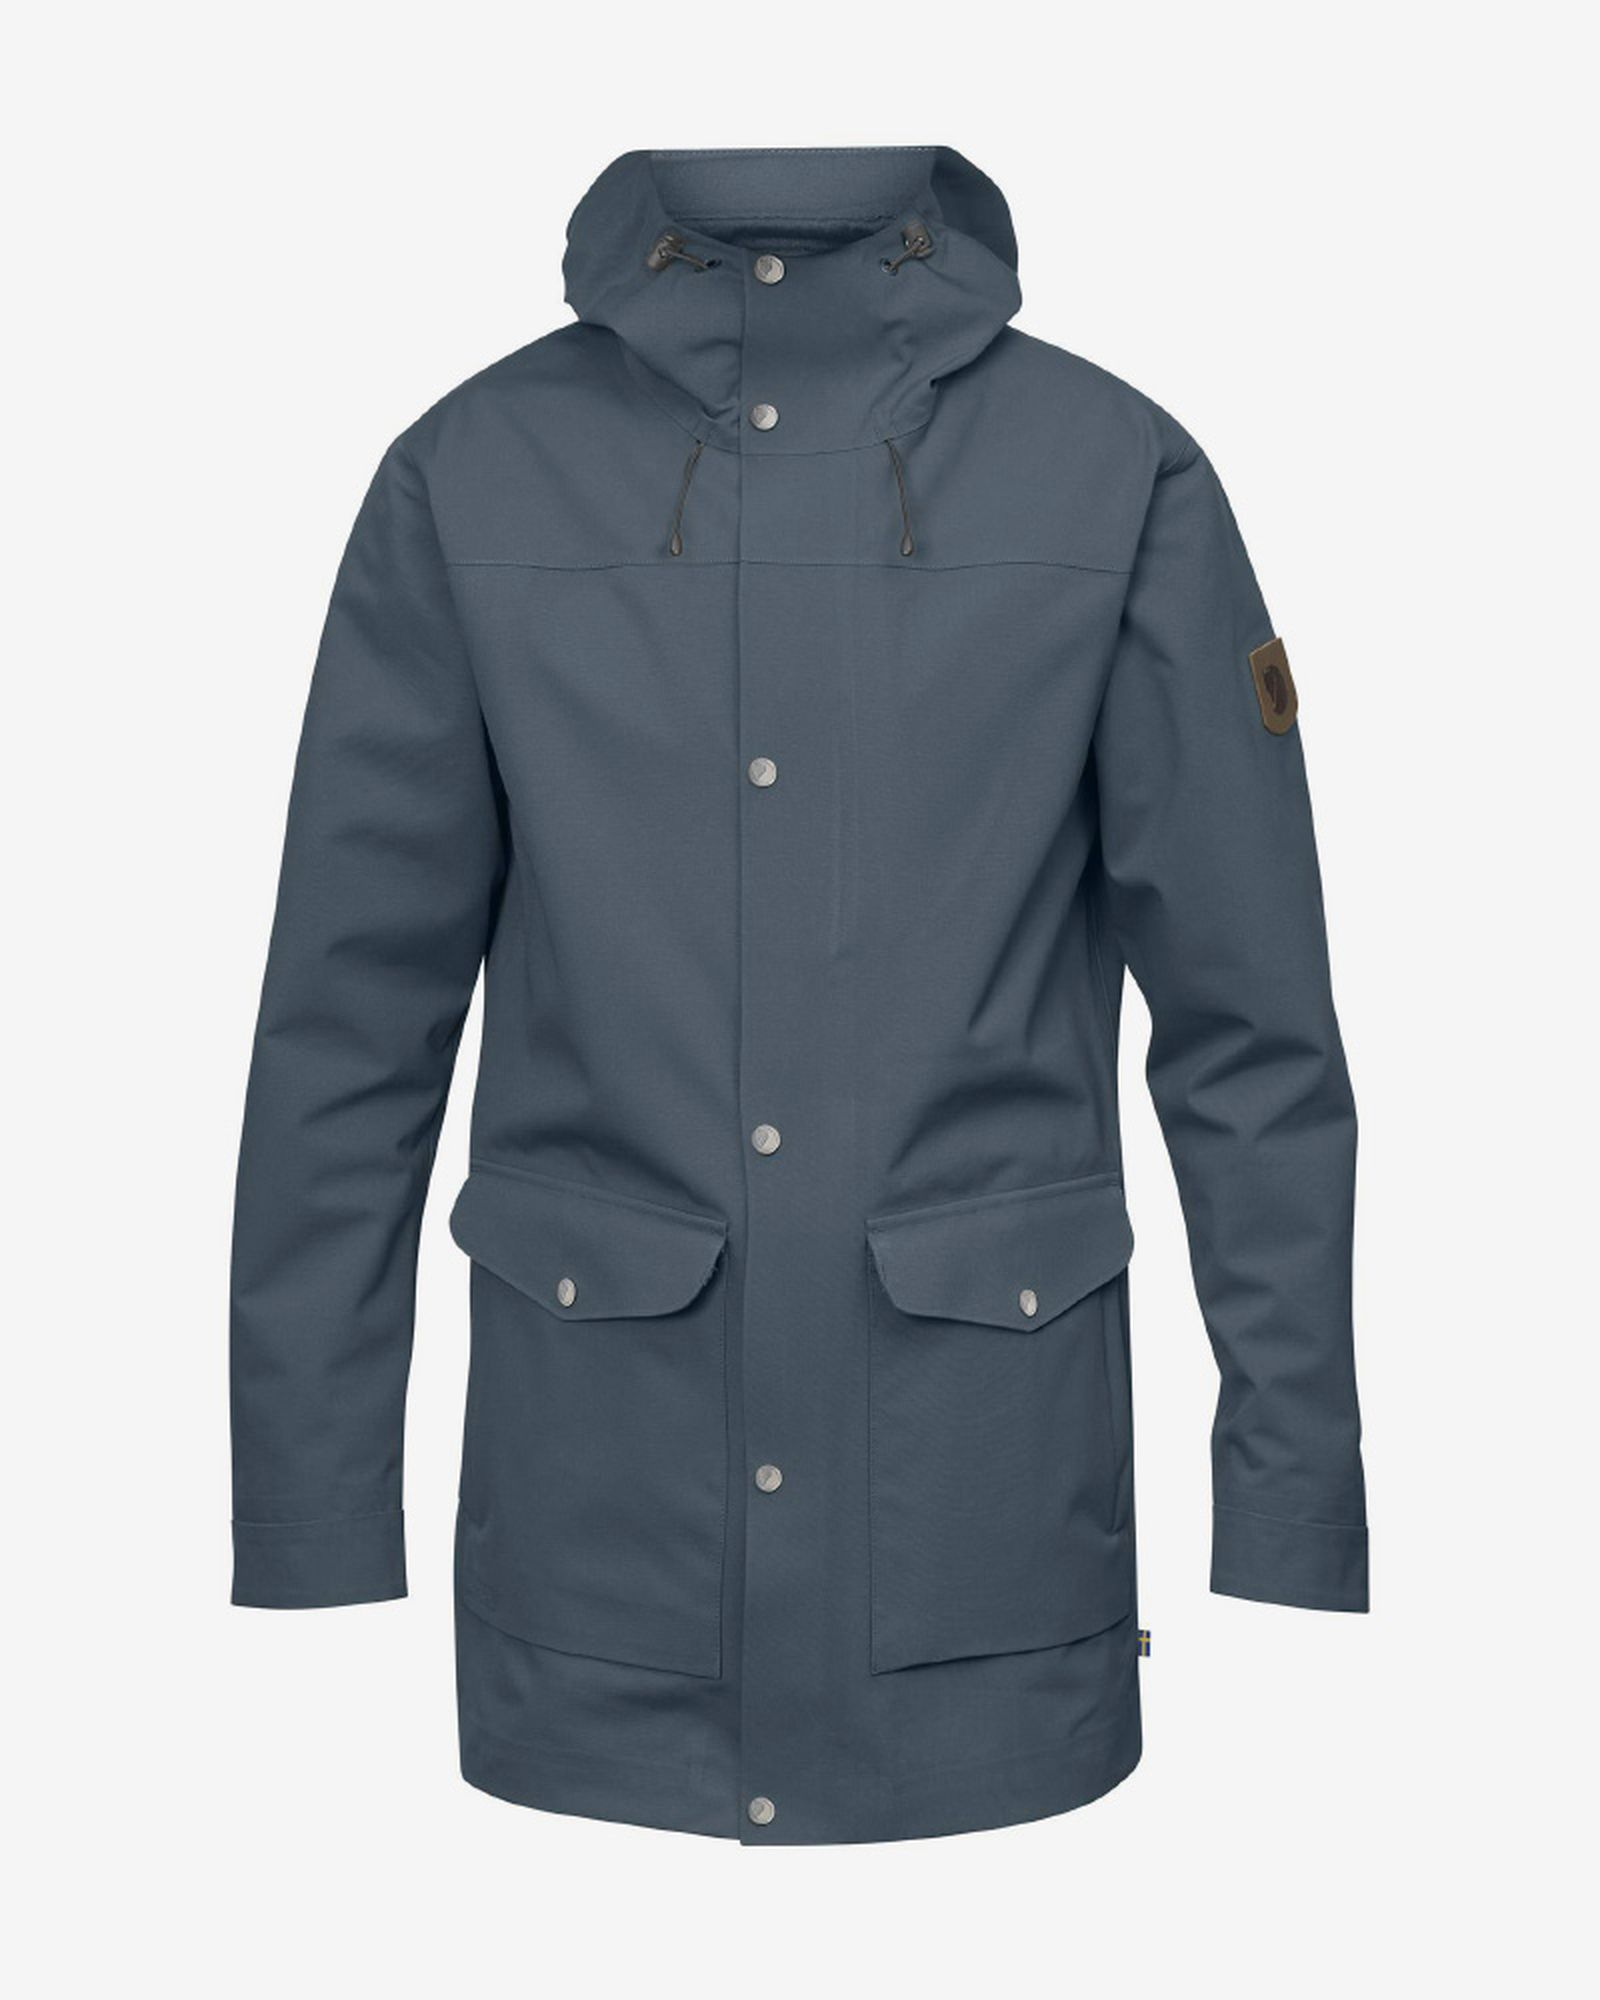 5 gore tex alternatives help survive winter Hoka One One Rowing Blazers The North Face